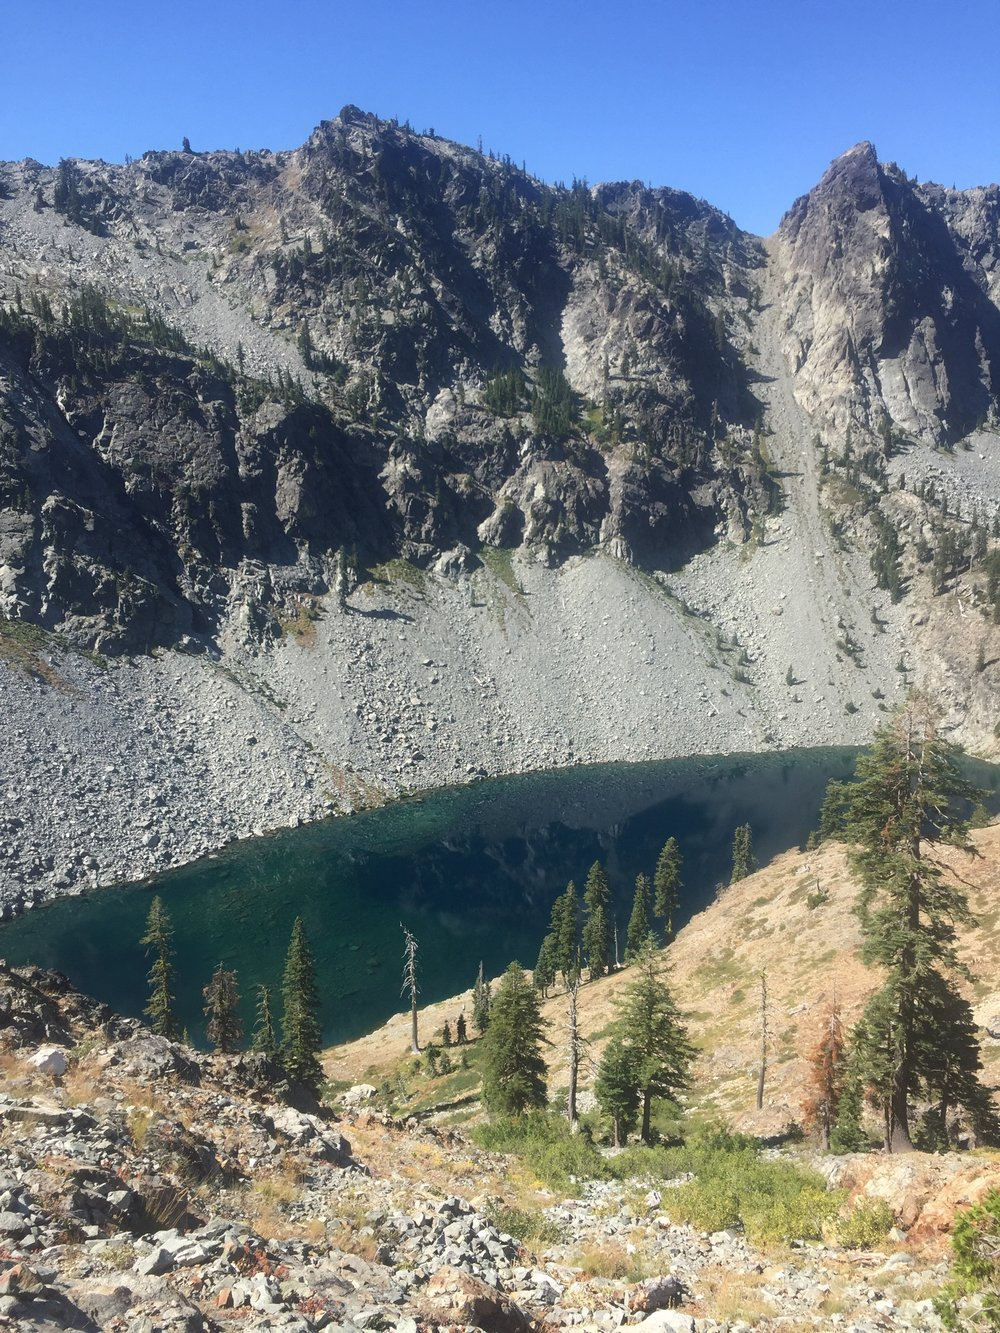 Man Eater Lake in Marble Mountain Wilderness, a place we'd love to visit on a future trip